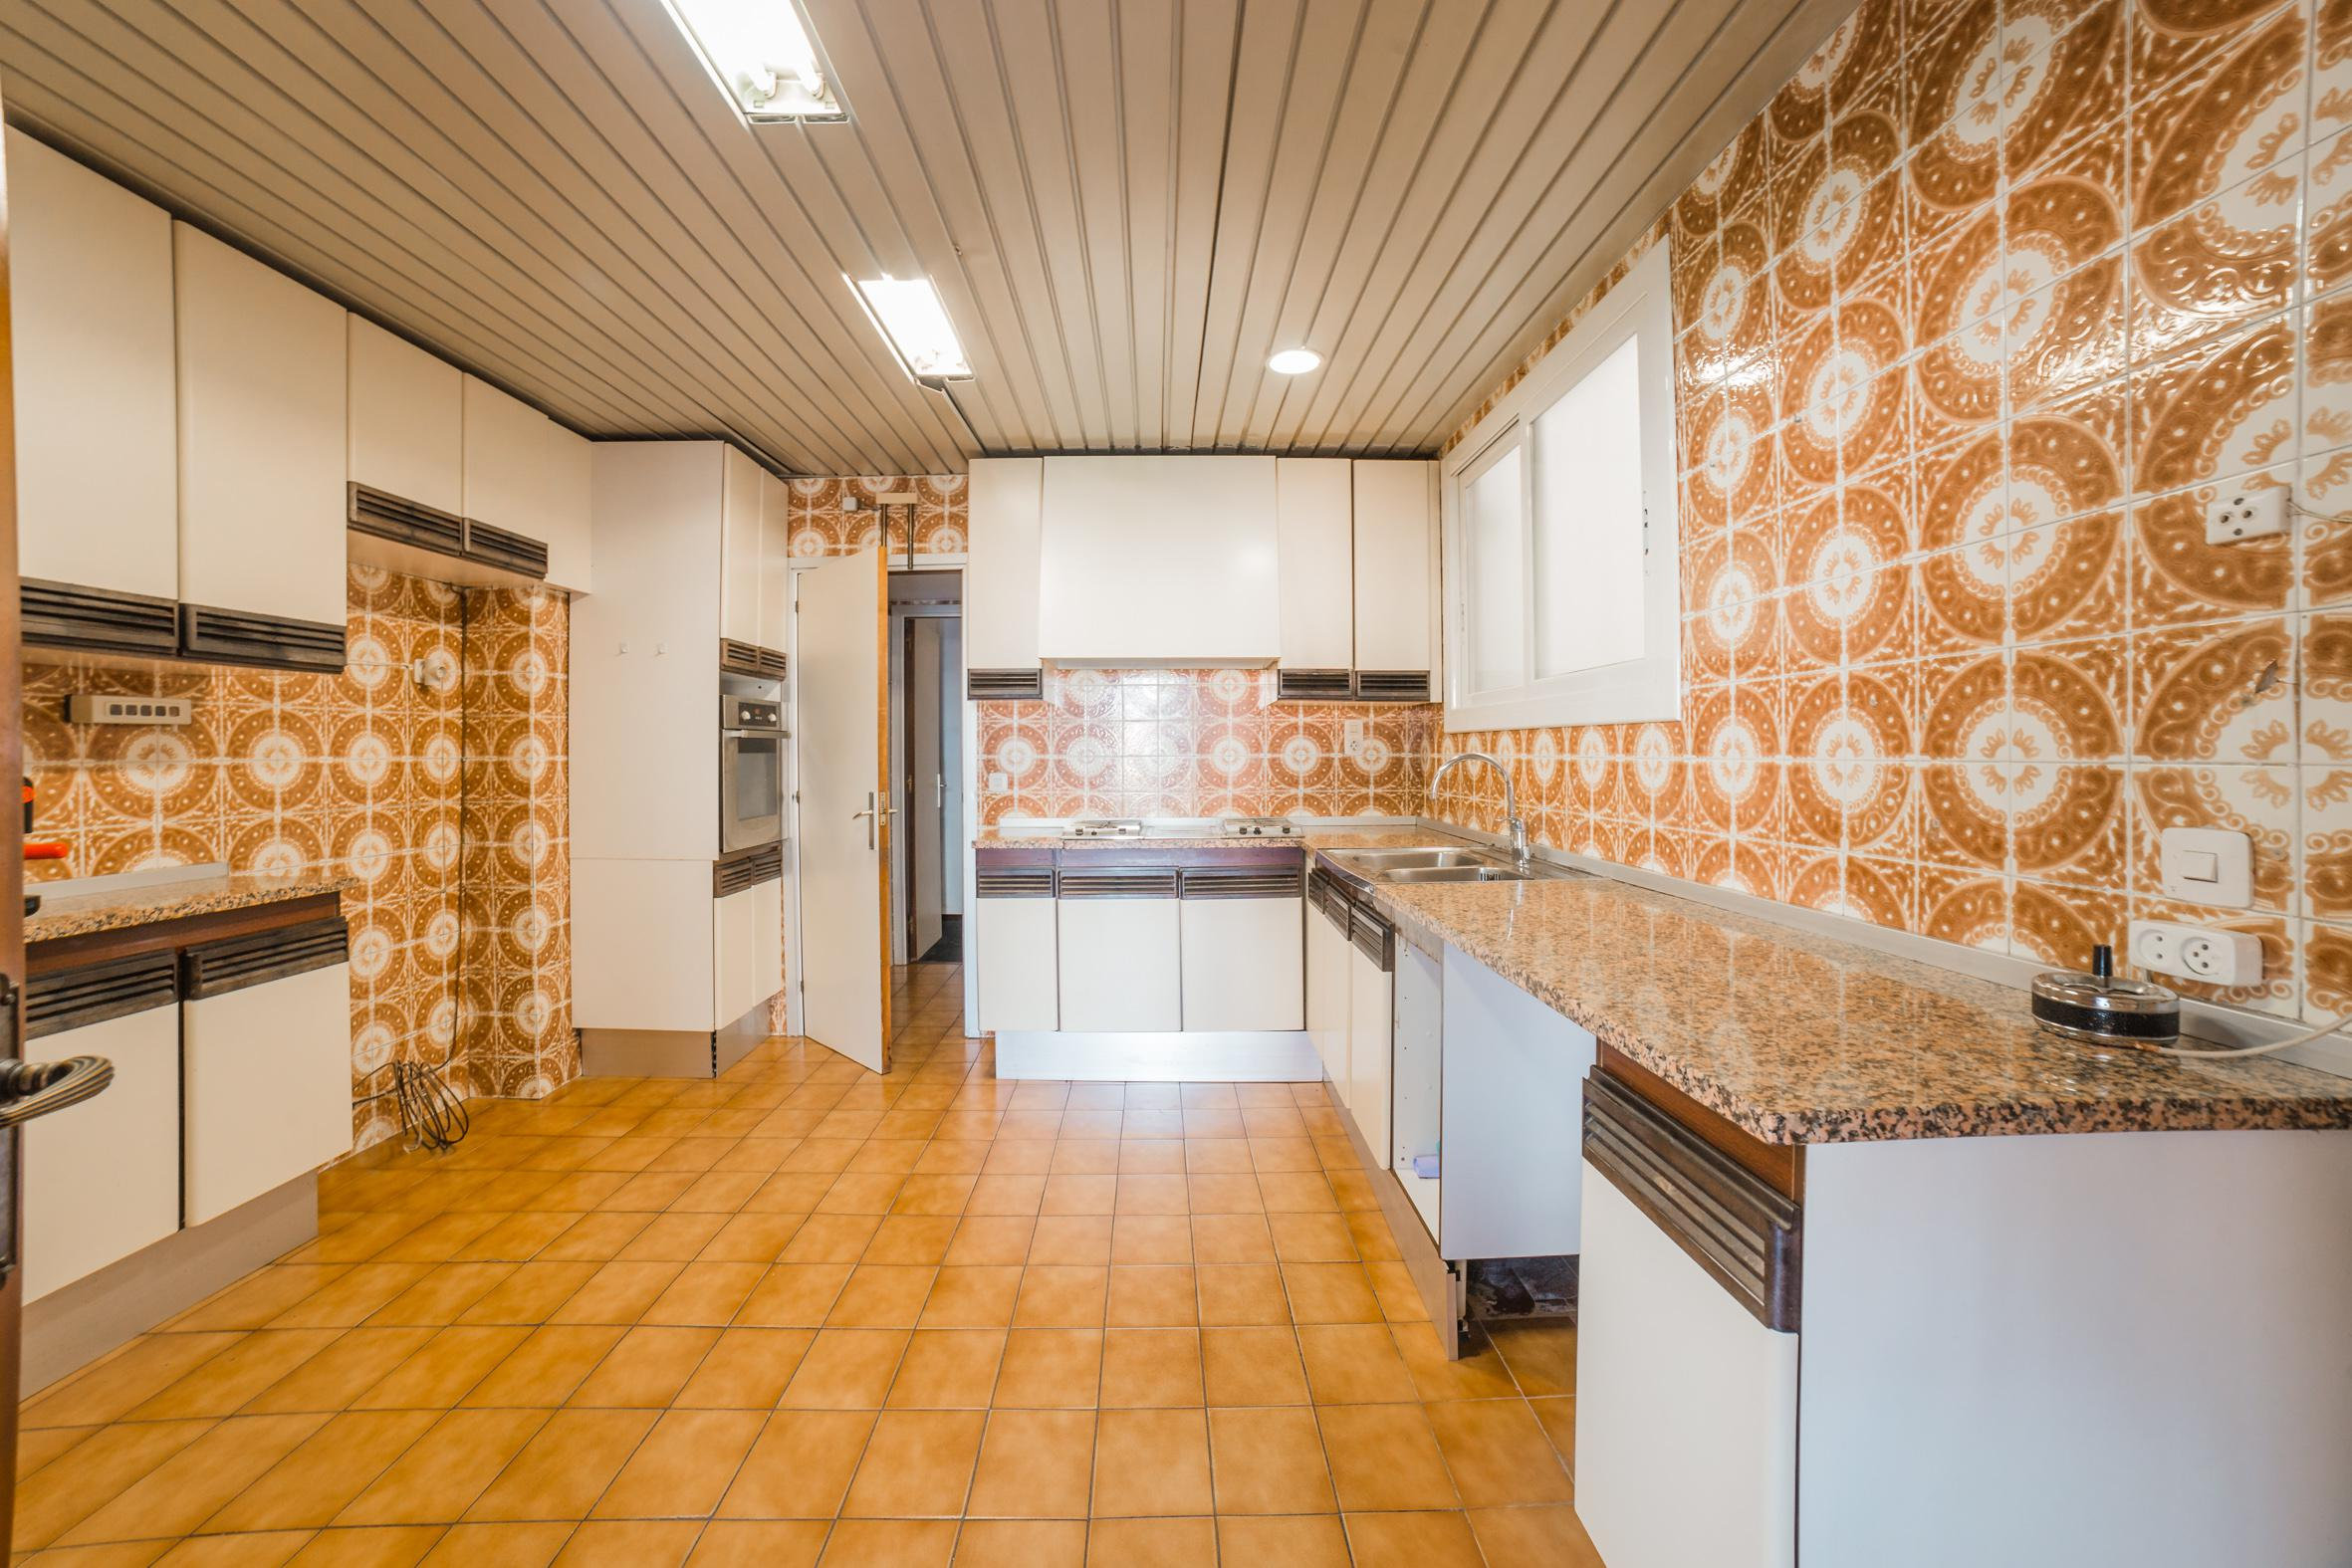 248988 Flat for sale in Les Corts, Les Corts 15